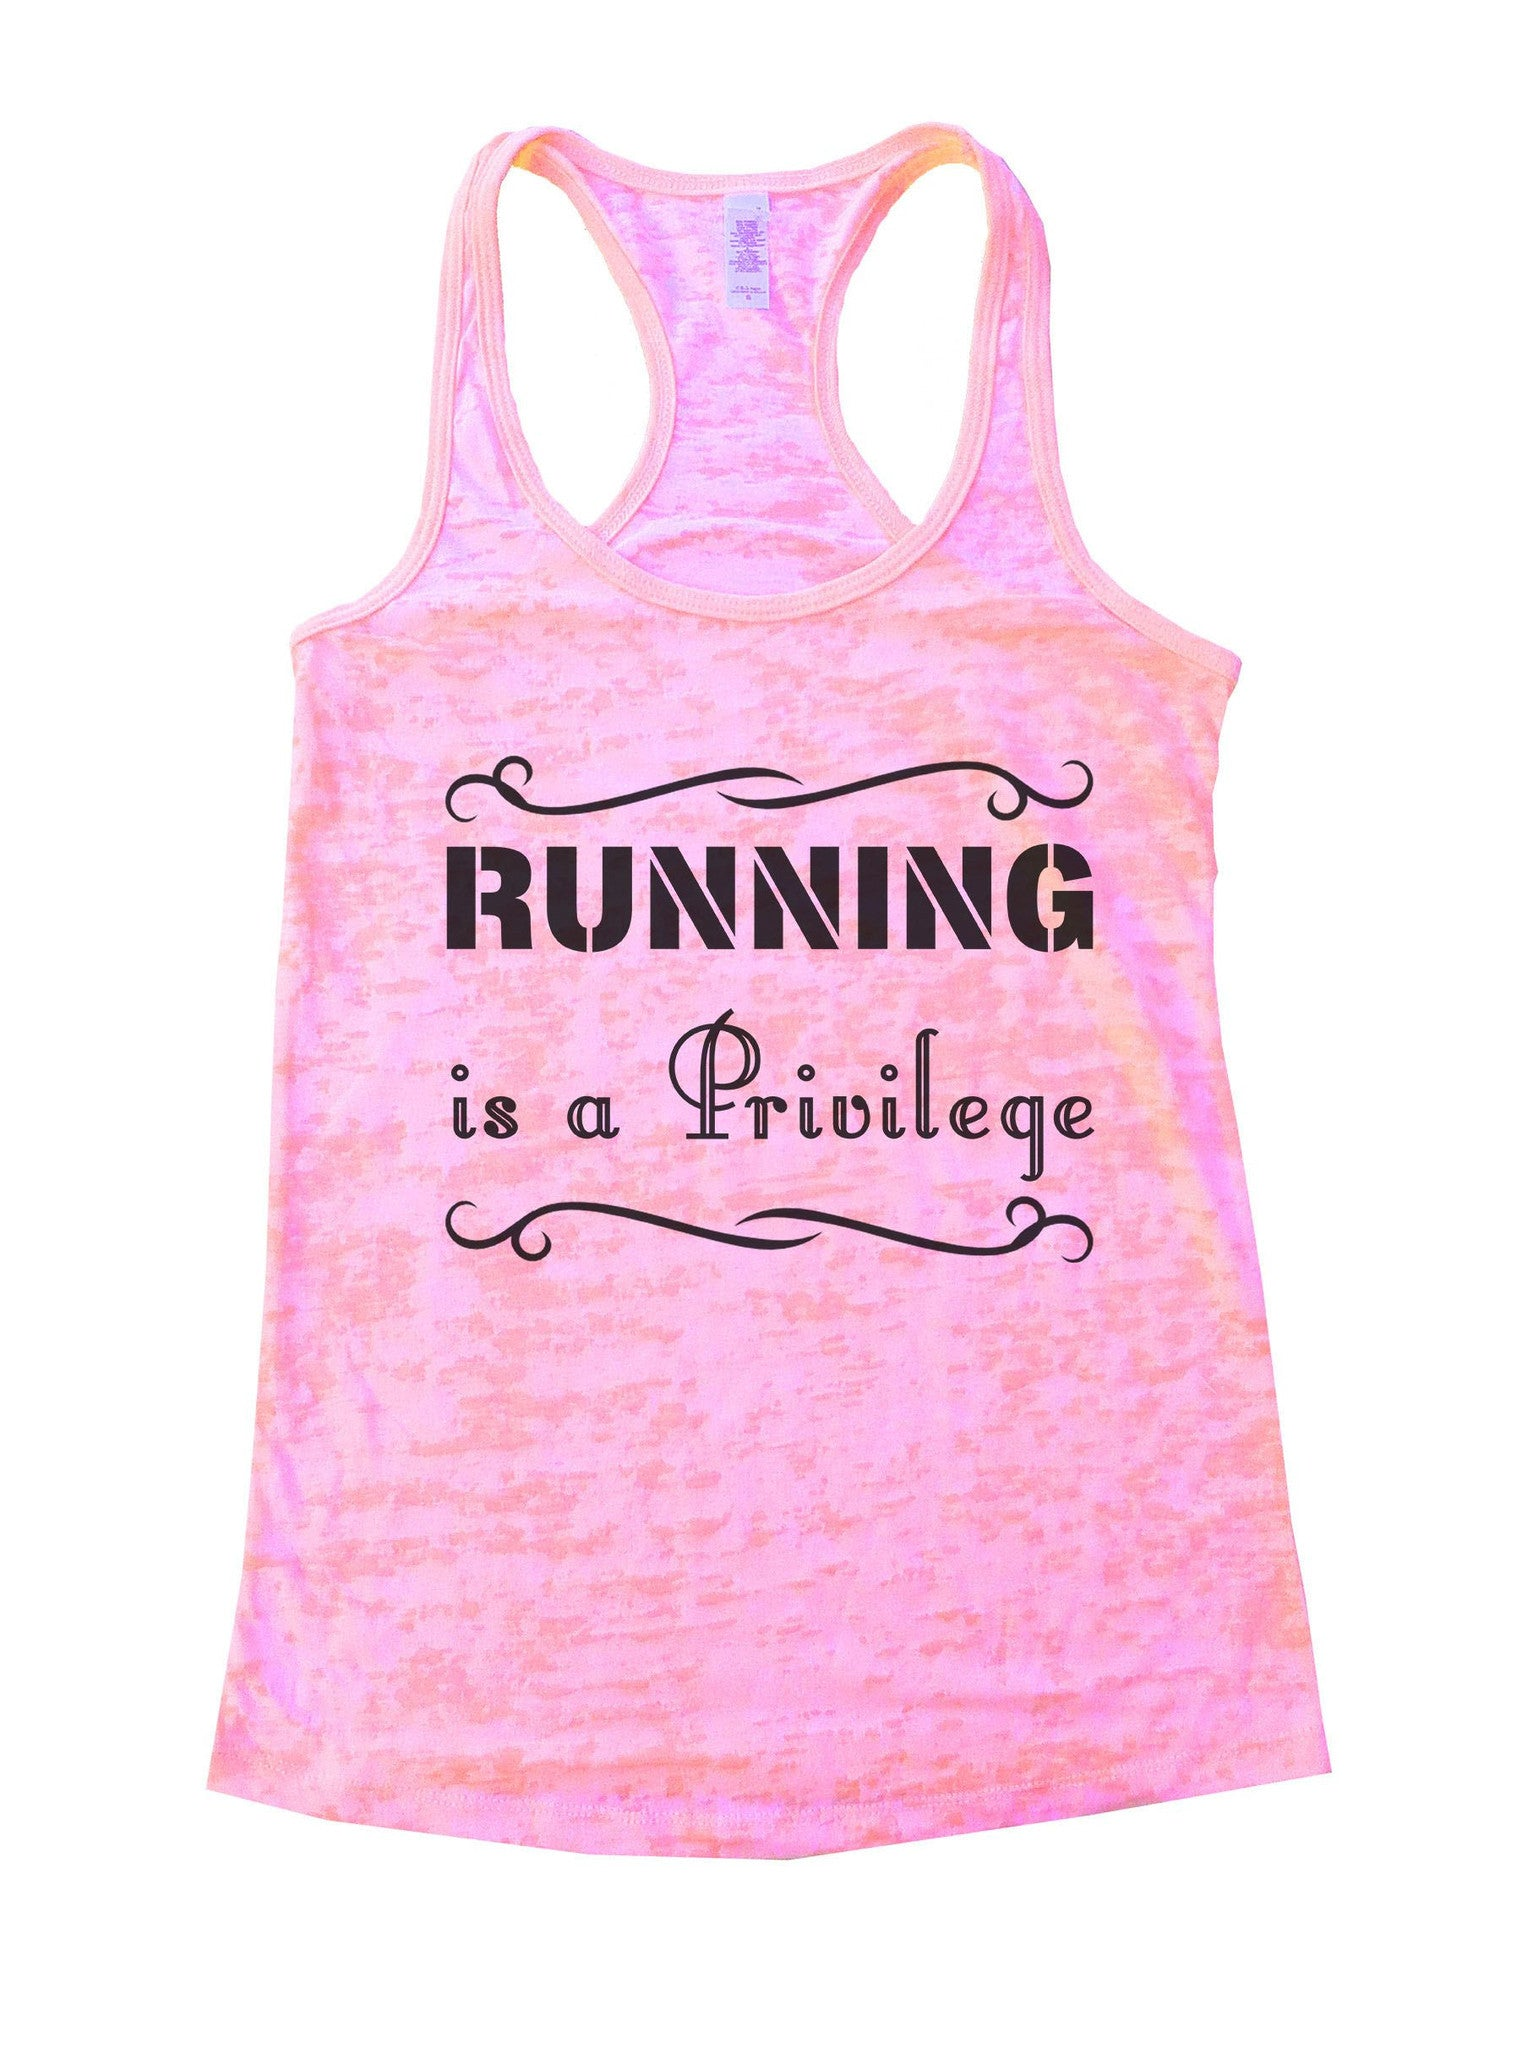 Running Is A Privilege Burnout Tank Top By BurnoutTankTops.com - 885 - Funny Shirts Tank Tops Burnouts and Triblends  - 1